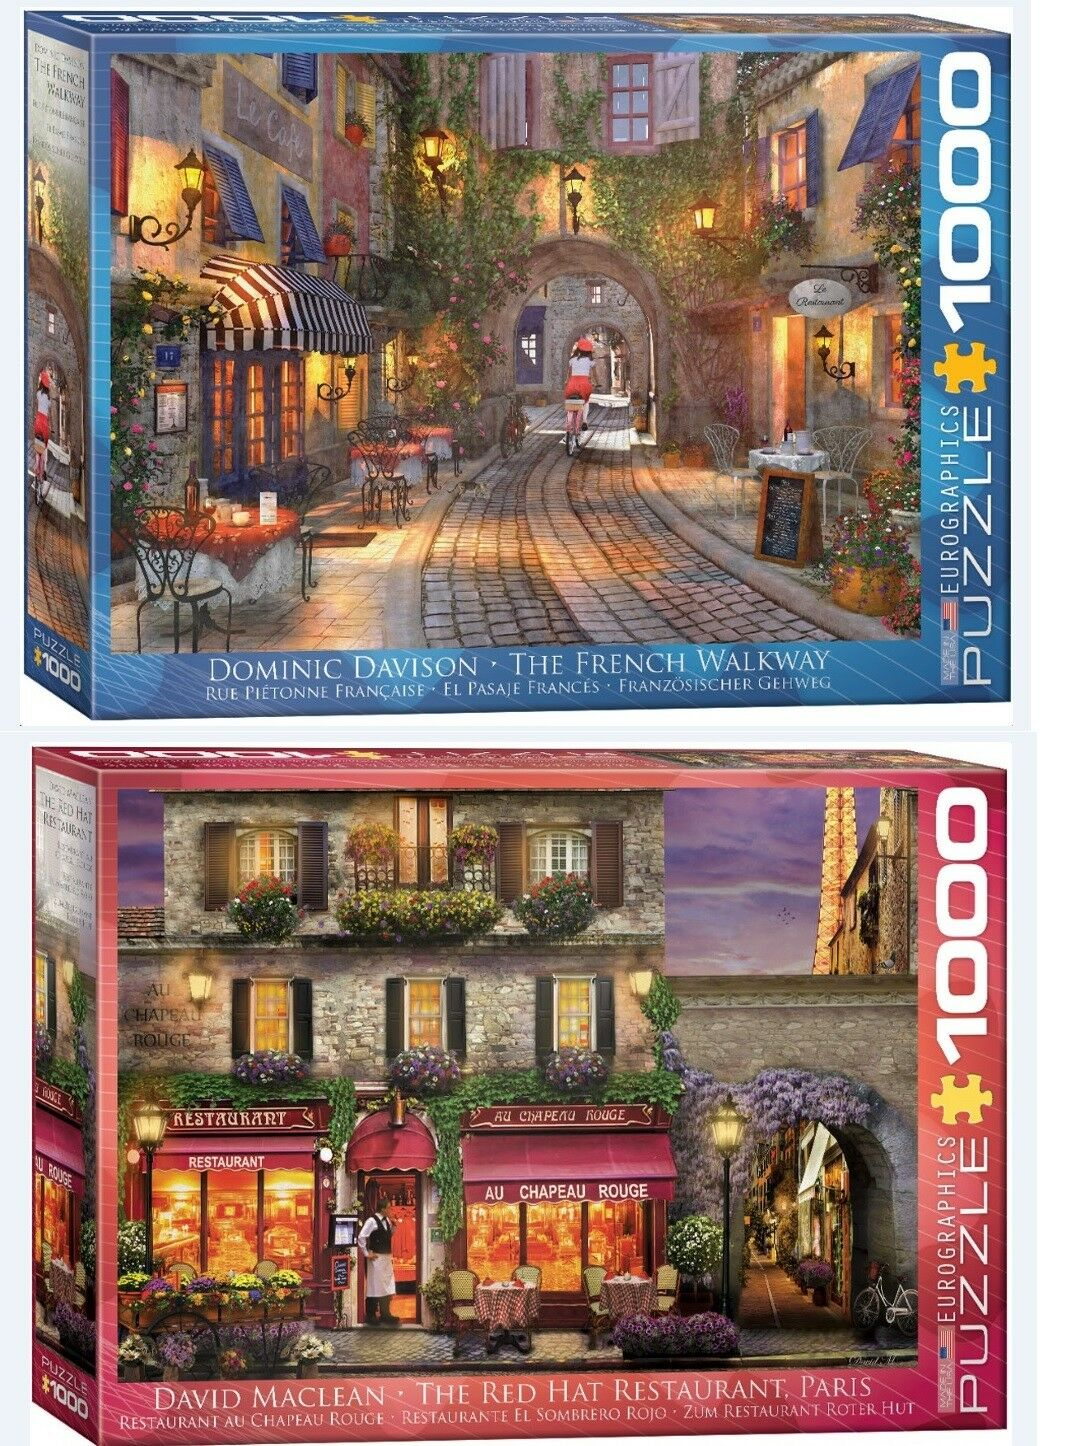 2 Eurographics puzzles 1000 pcs The French Walkway  + The Red Hat Restaurant